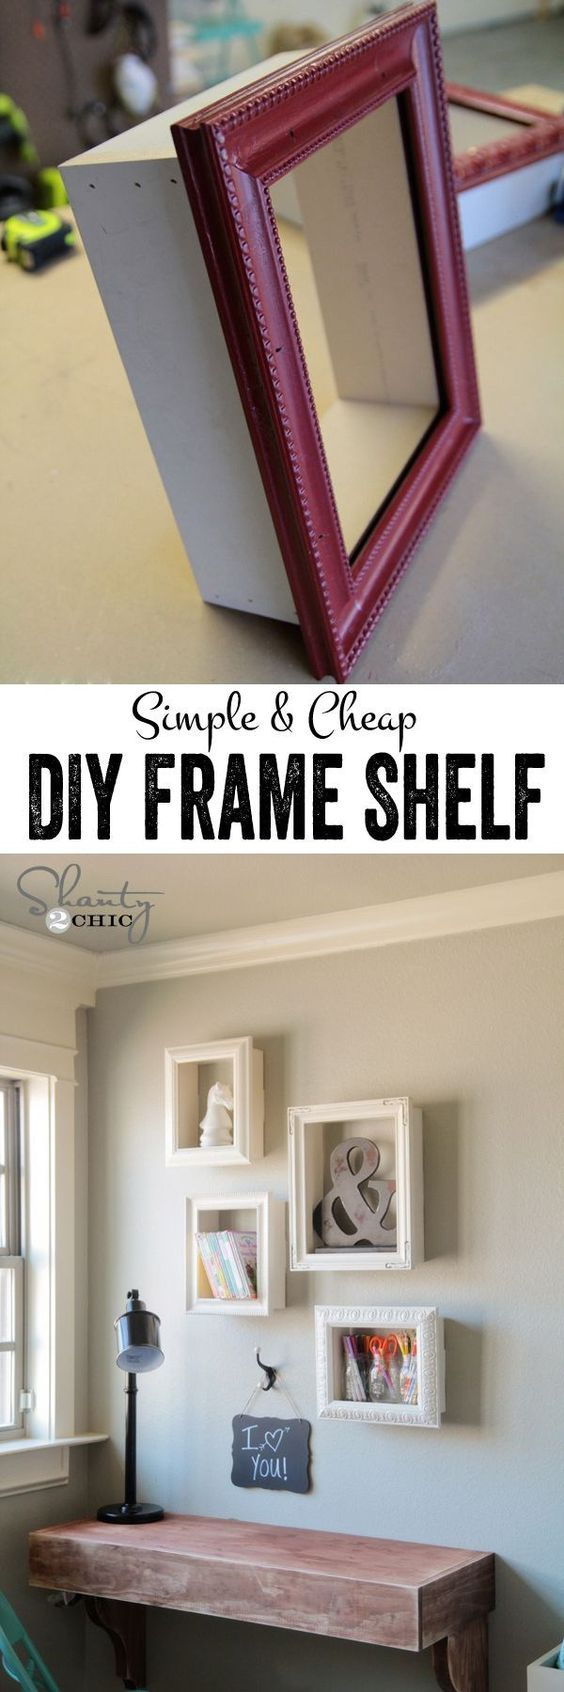 best 25 frames on wall ideas on pinterest picture walls photo